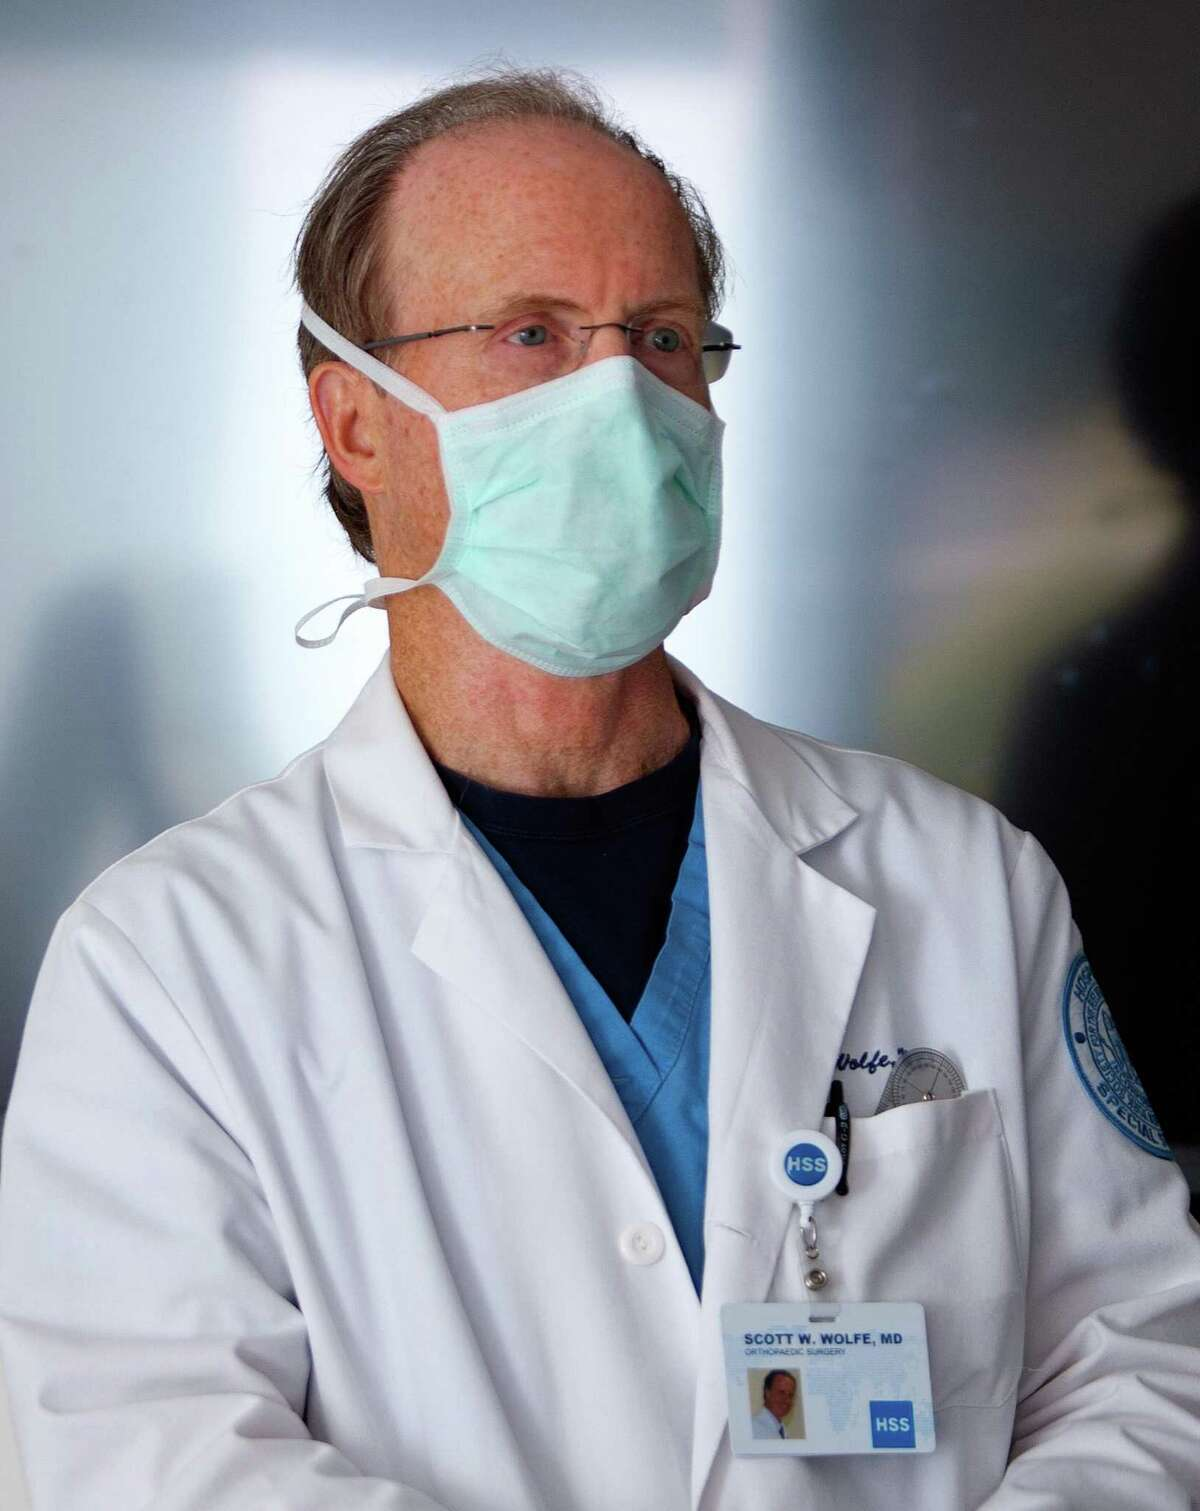 Dr. Scott Wolfe, who performed a total wrist replacement, the first of its kind in the world, talks about the surgery at the Hospital for Special Surgery in Stamford, Conn., on Thursday June 10, 2021.